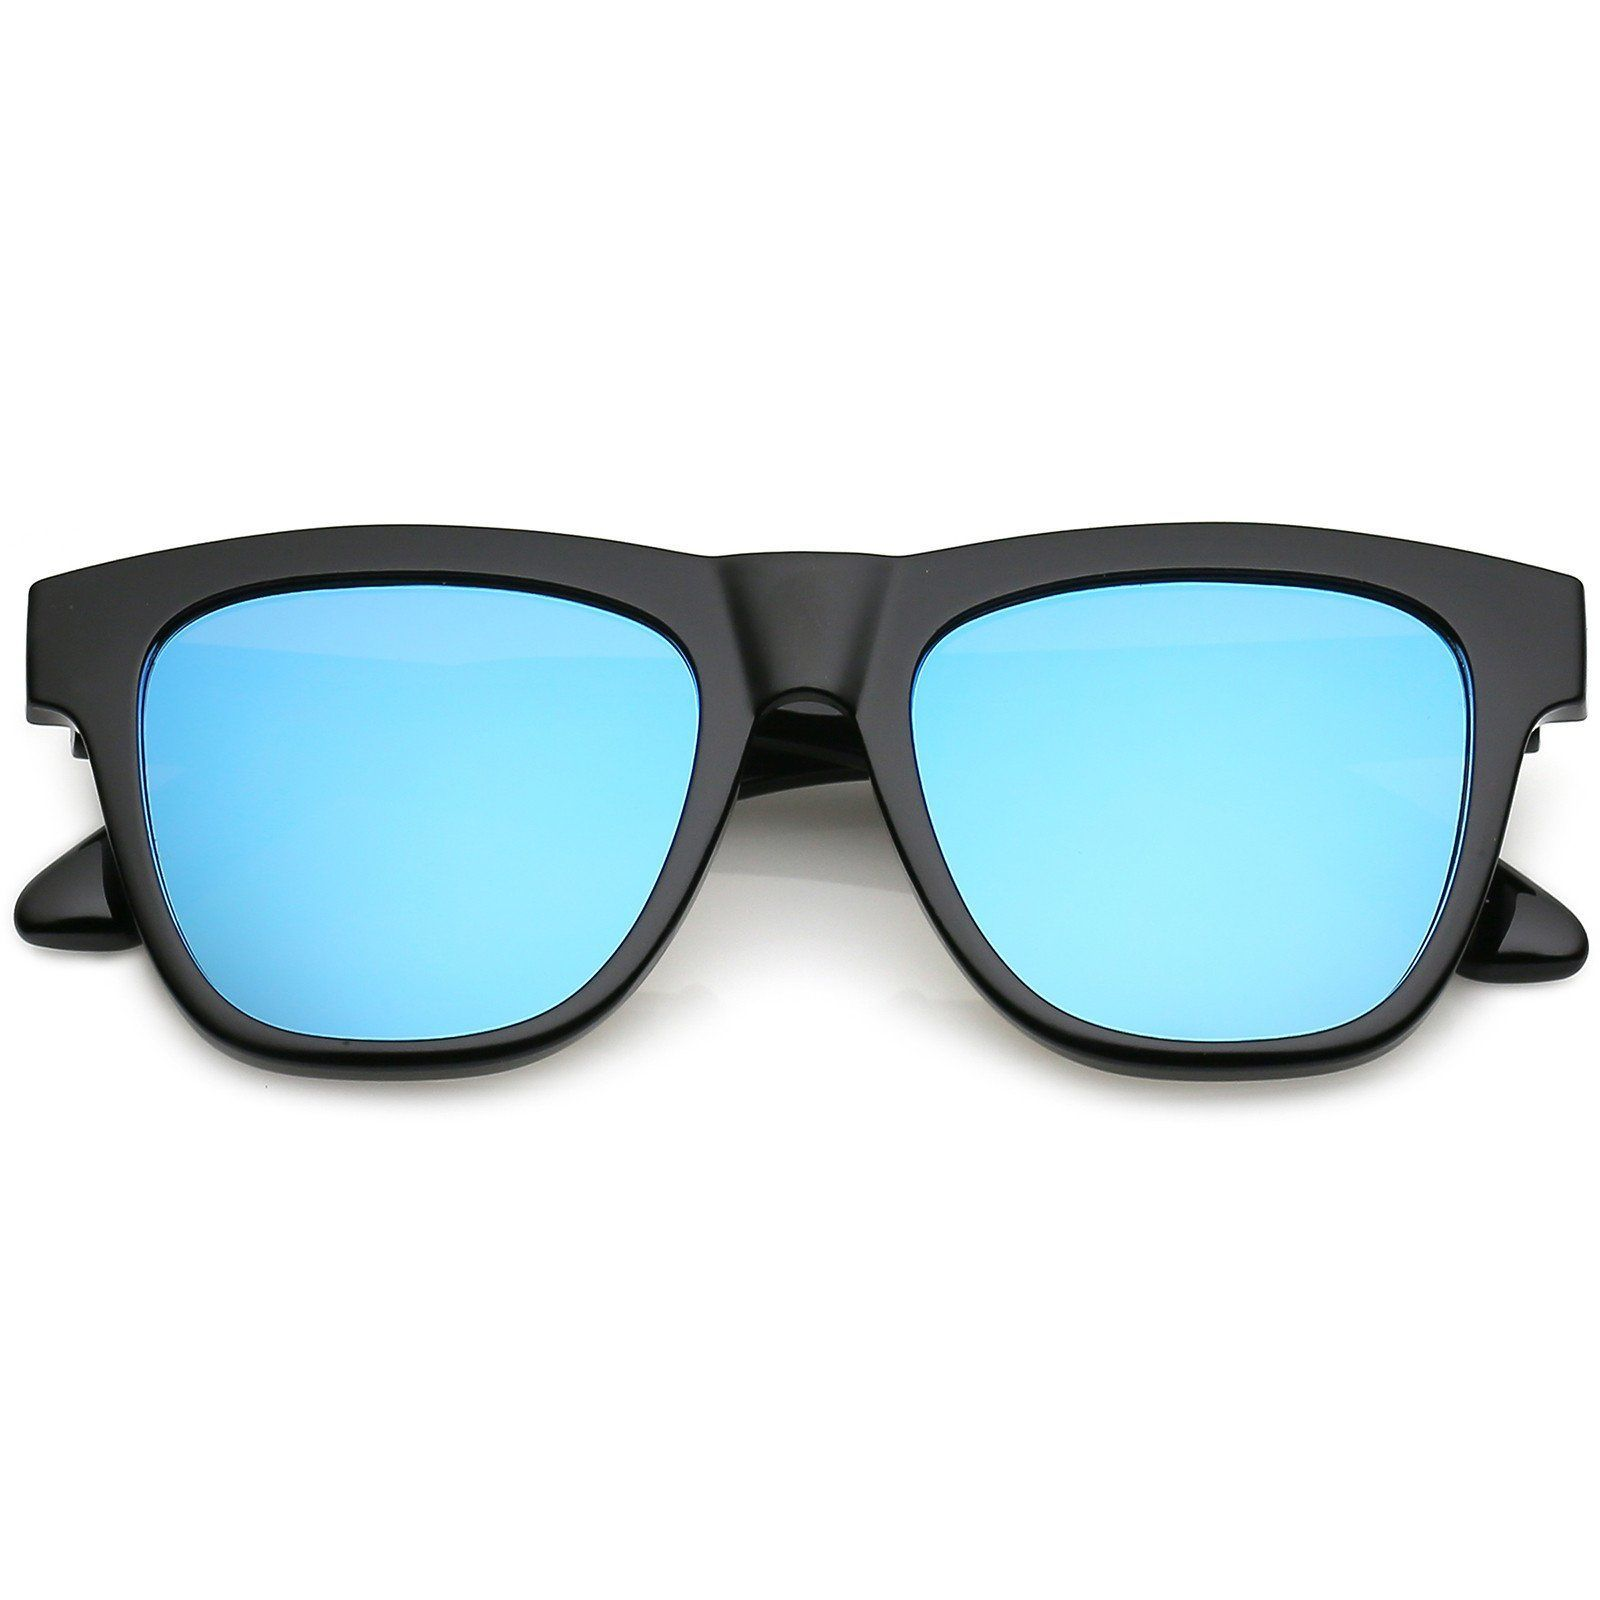 Classic Horn Rimmed Sunglasses With Thick Arms Square Mirror Flat ...